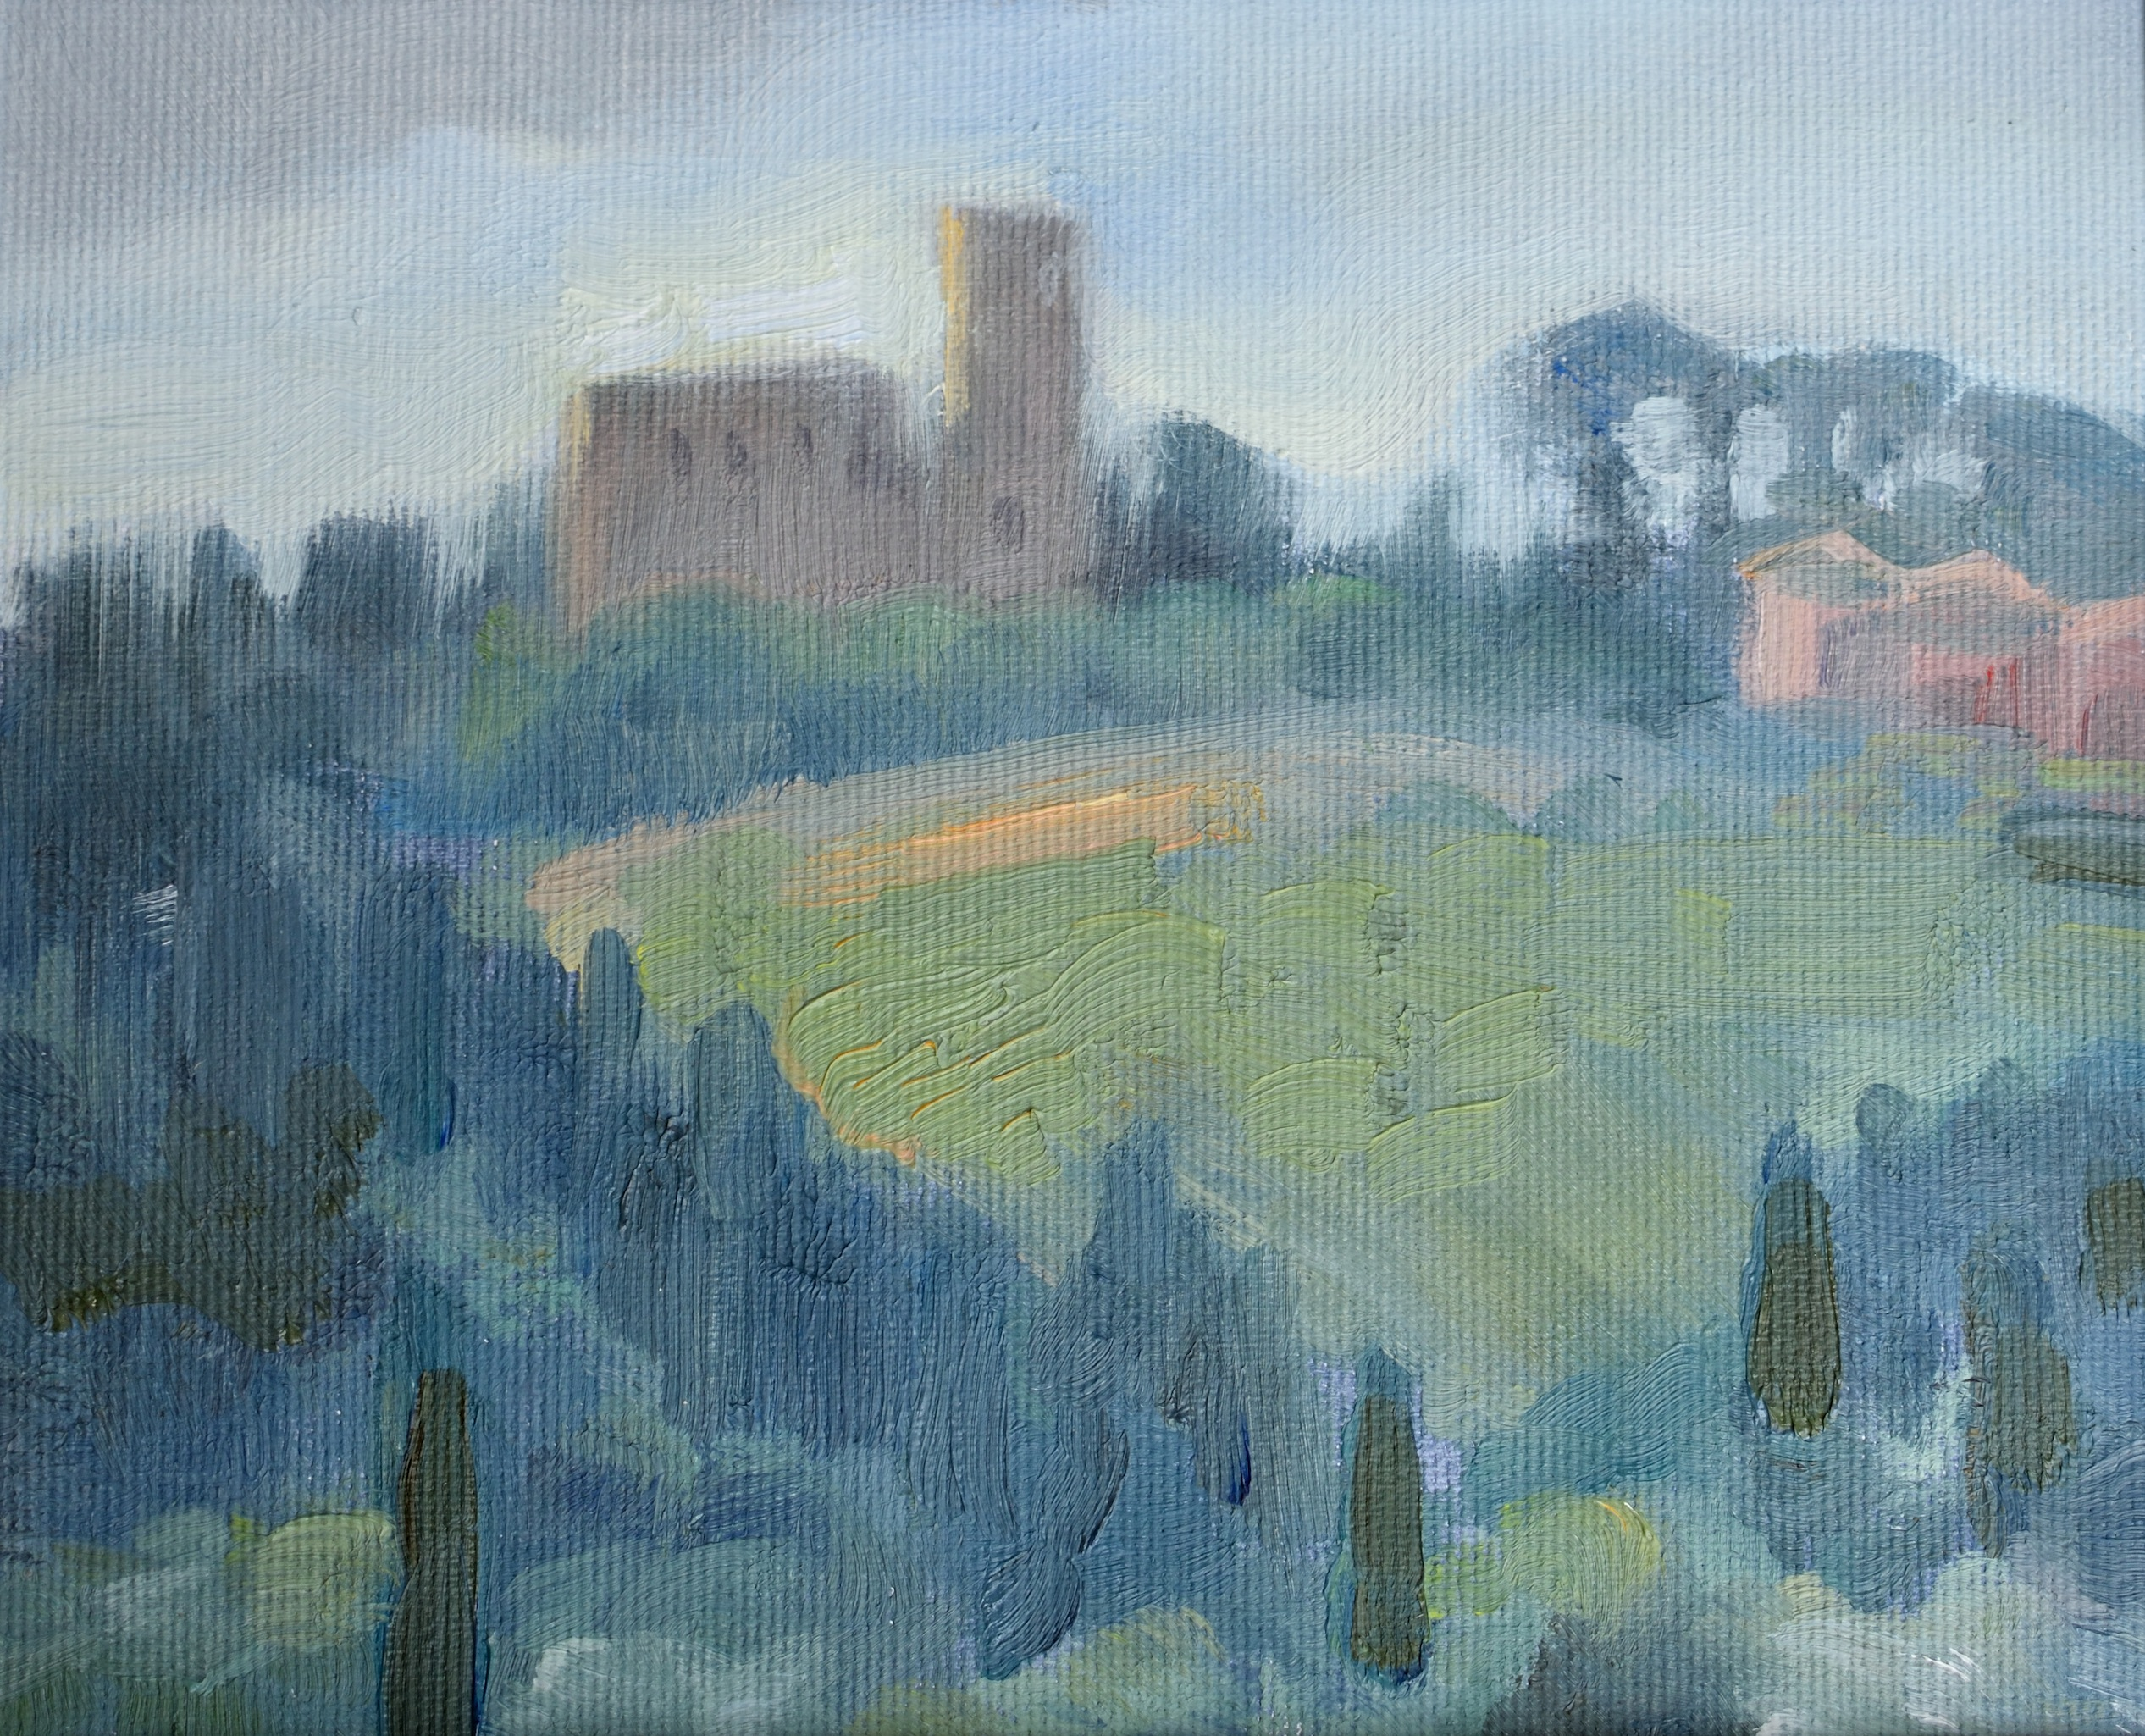 Torre del Gallo, oil on canvas, 15 x 20 cm, 2018